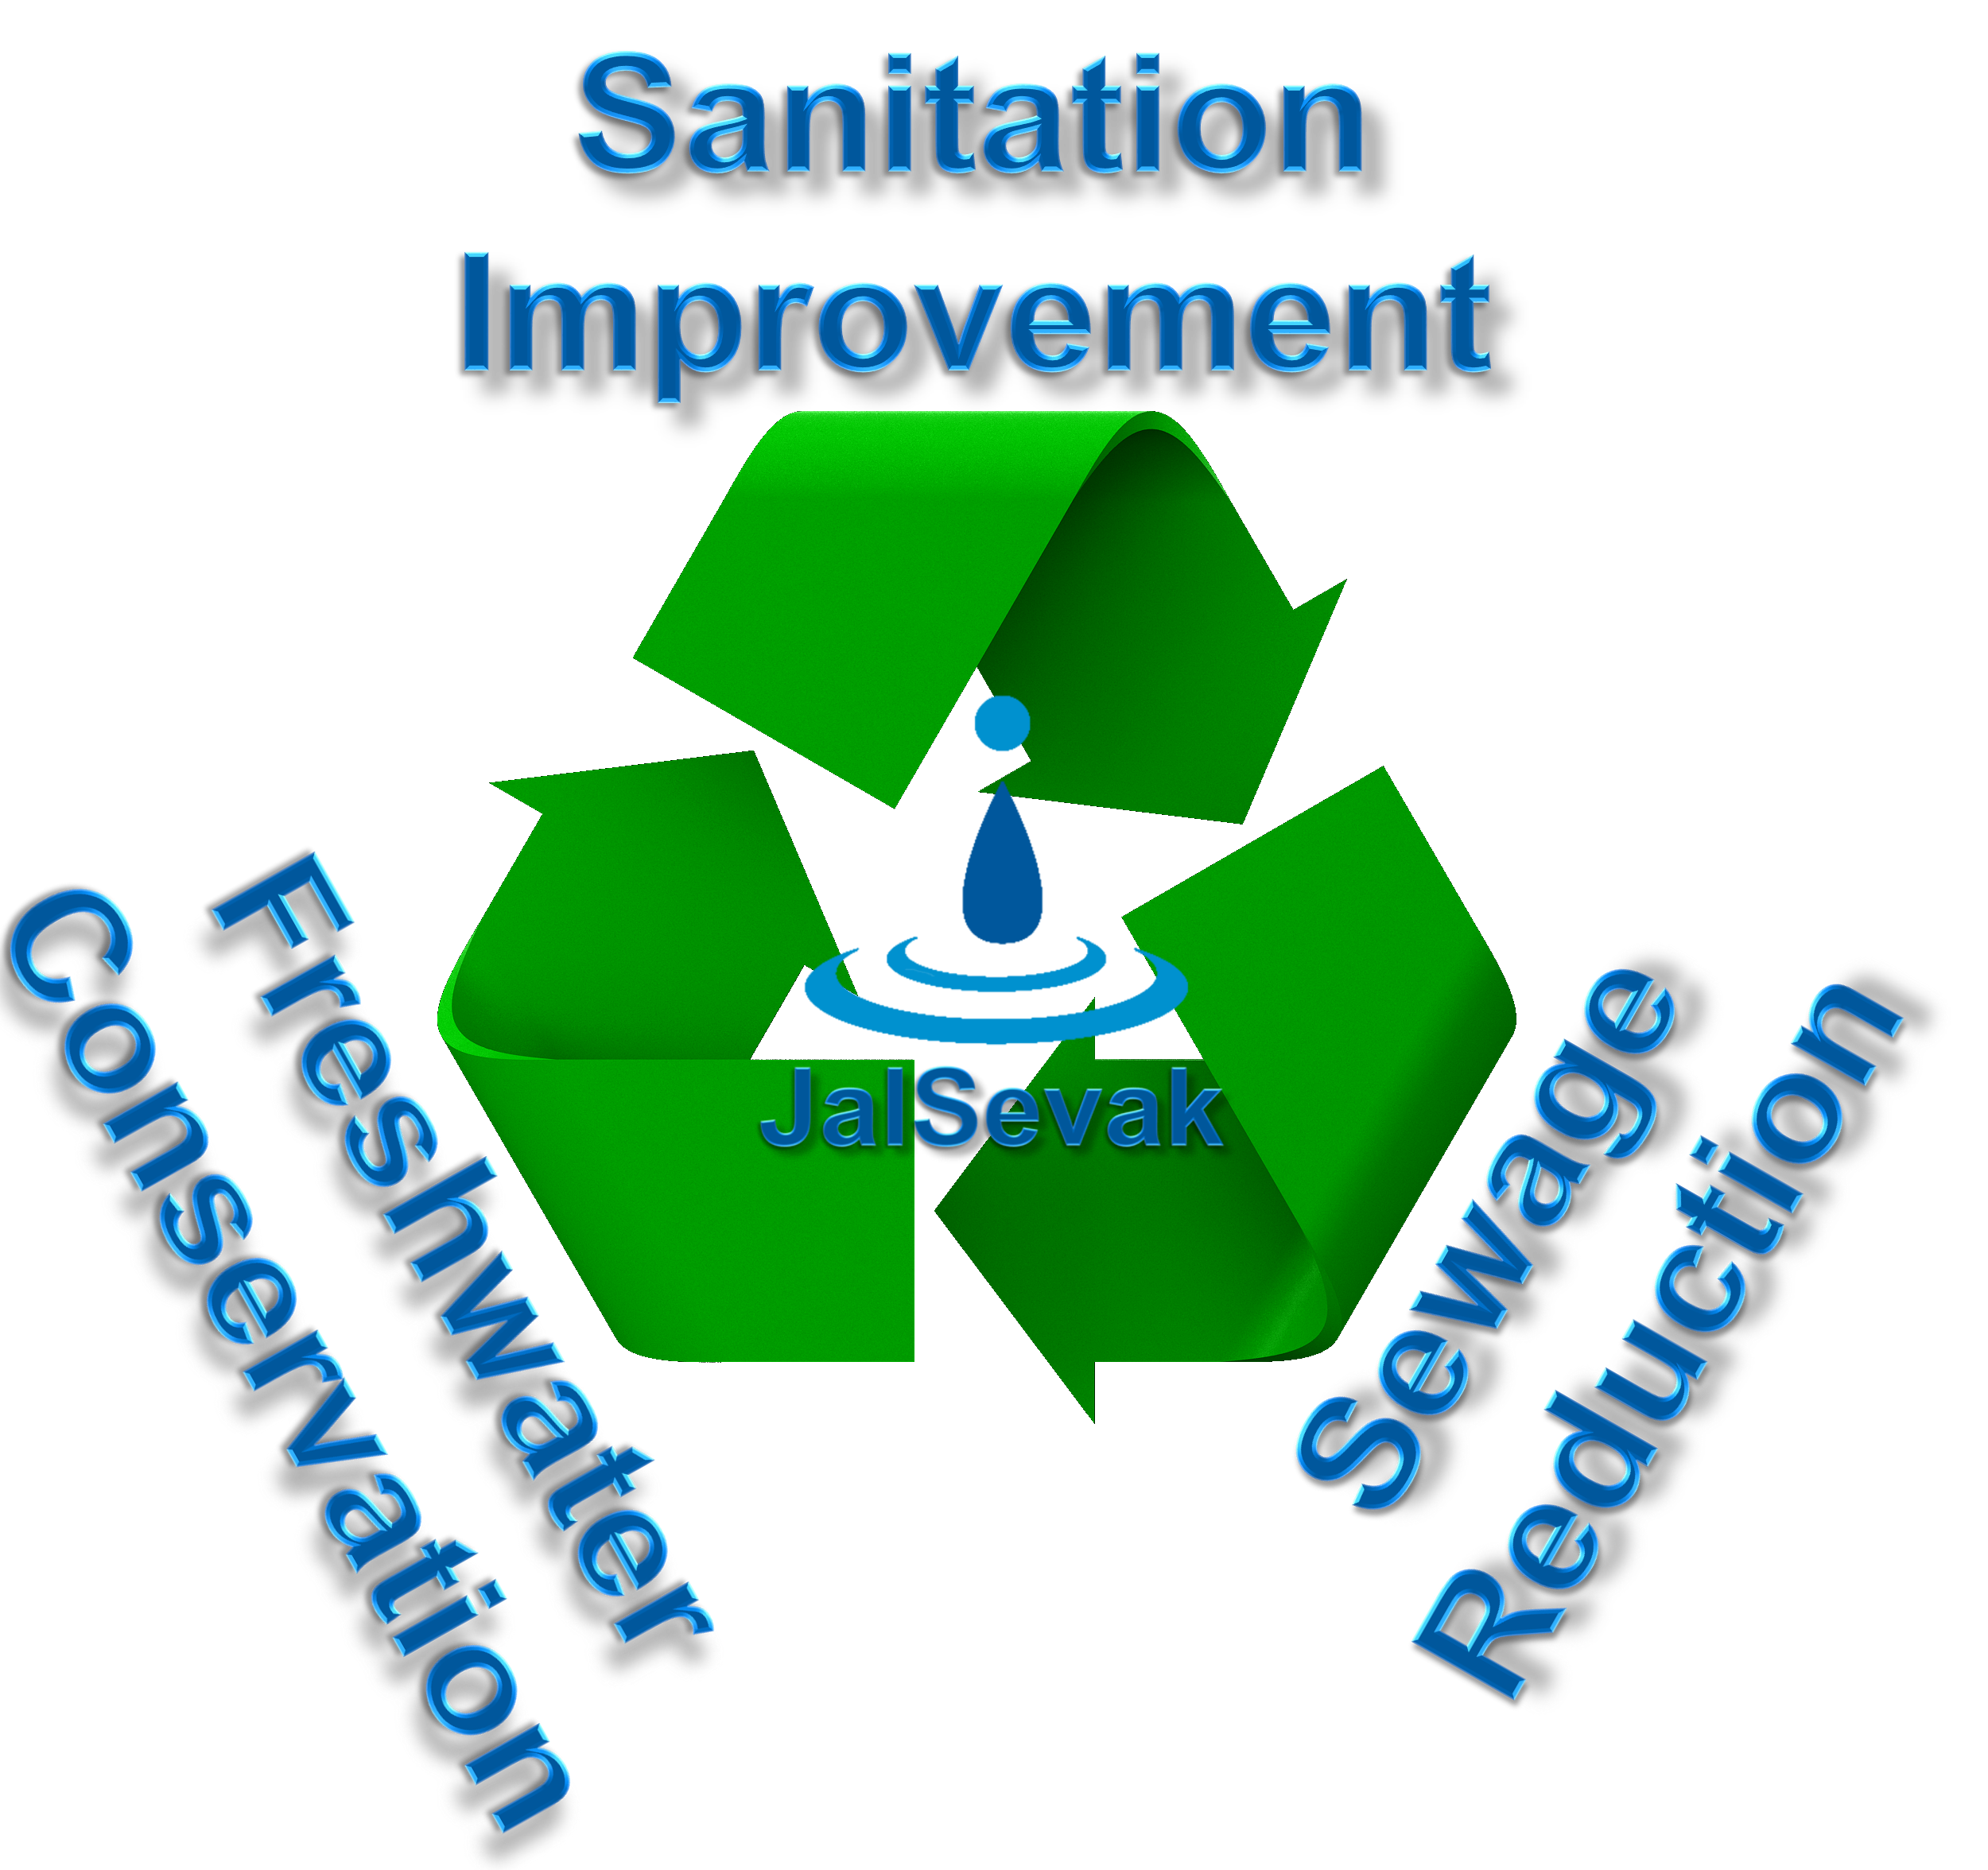 Benefits of greywater recycling